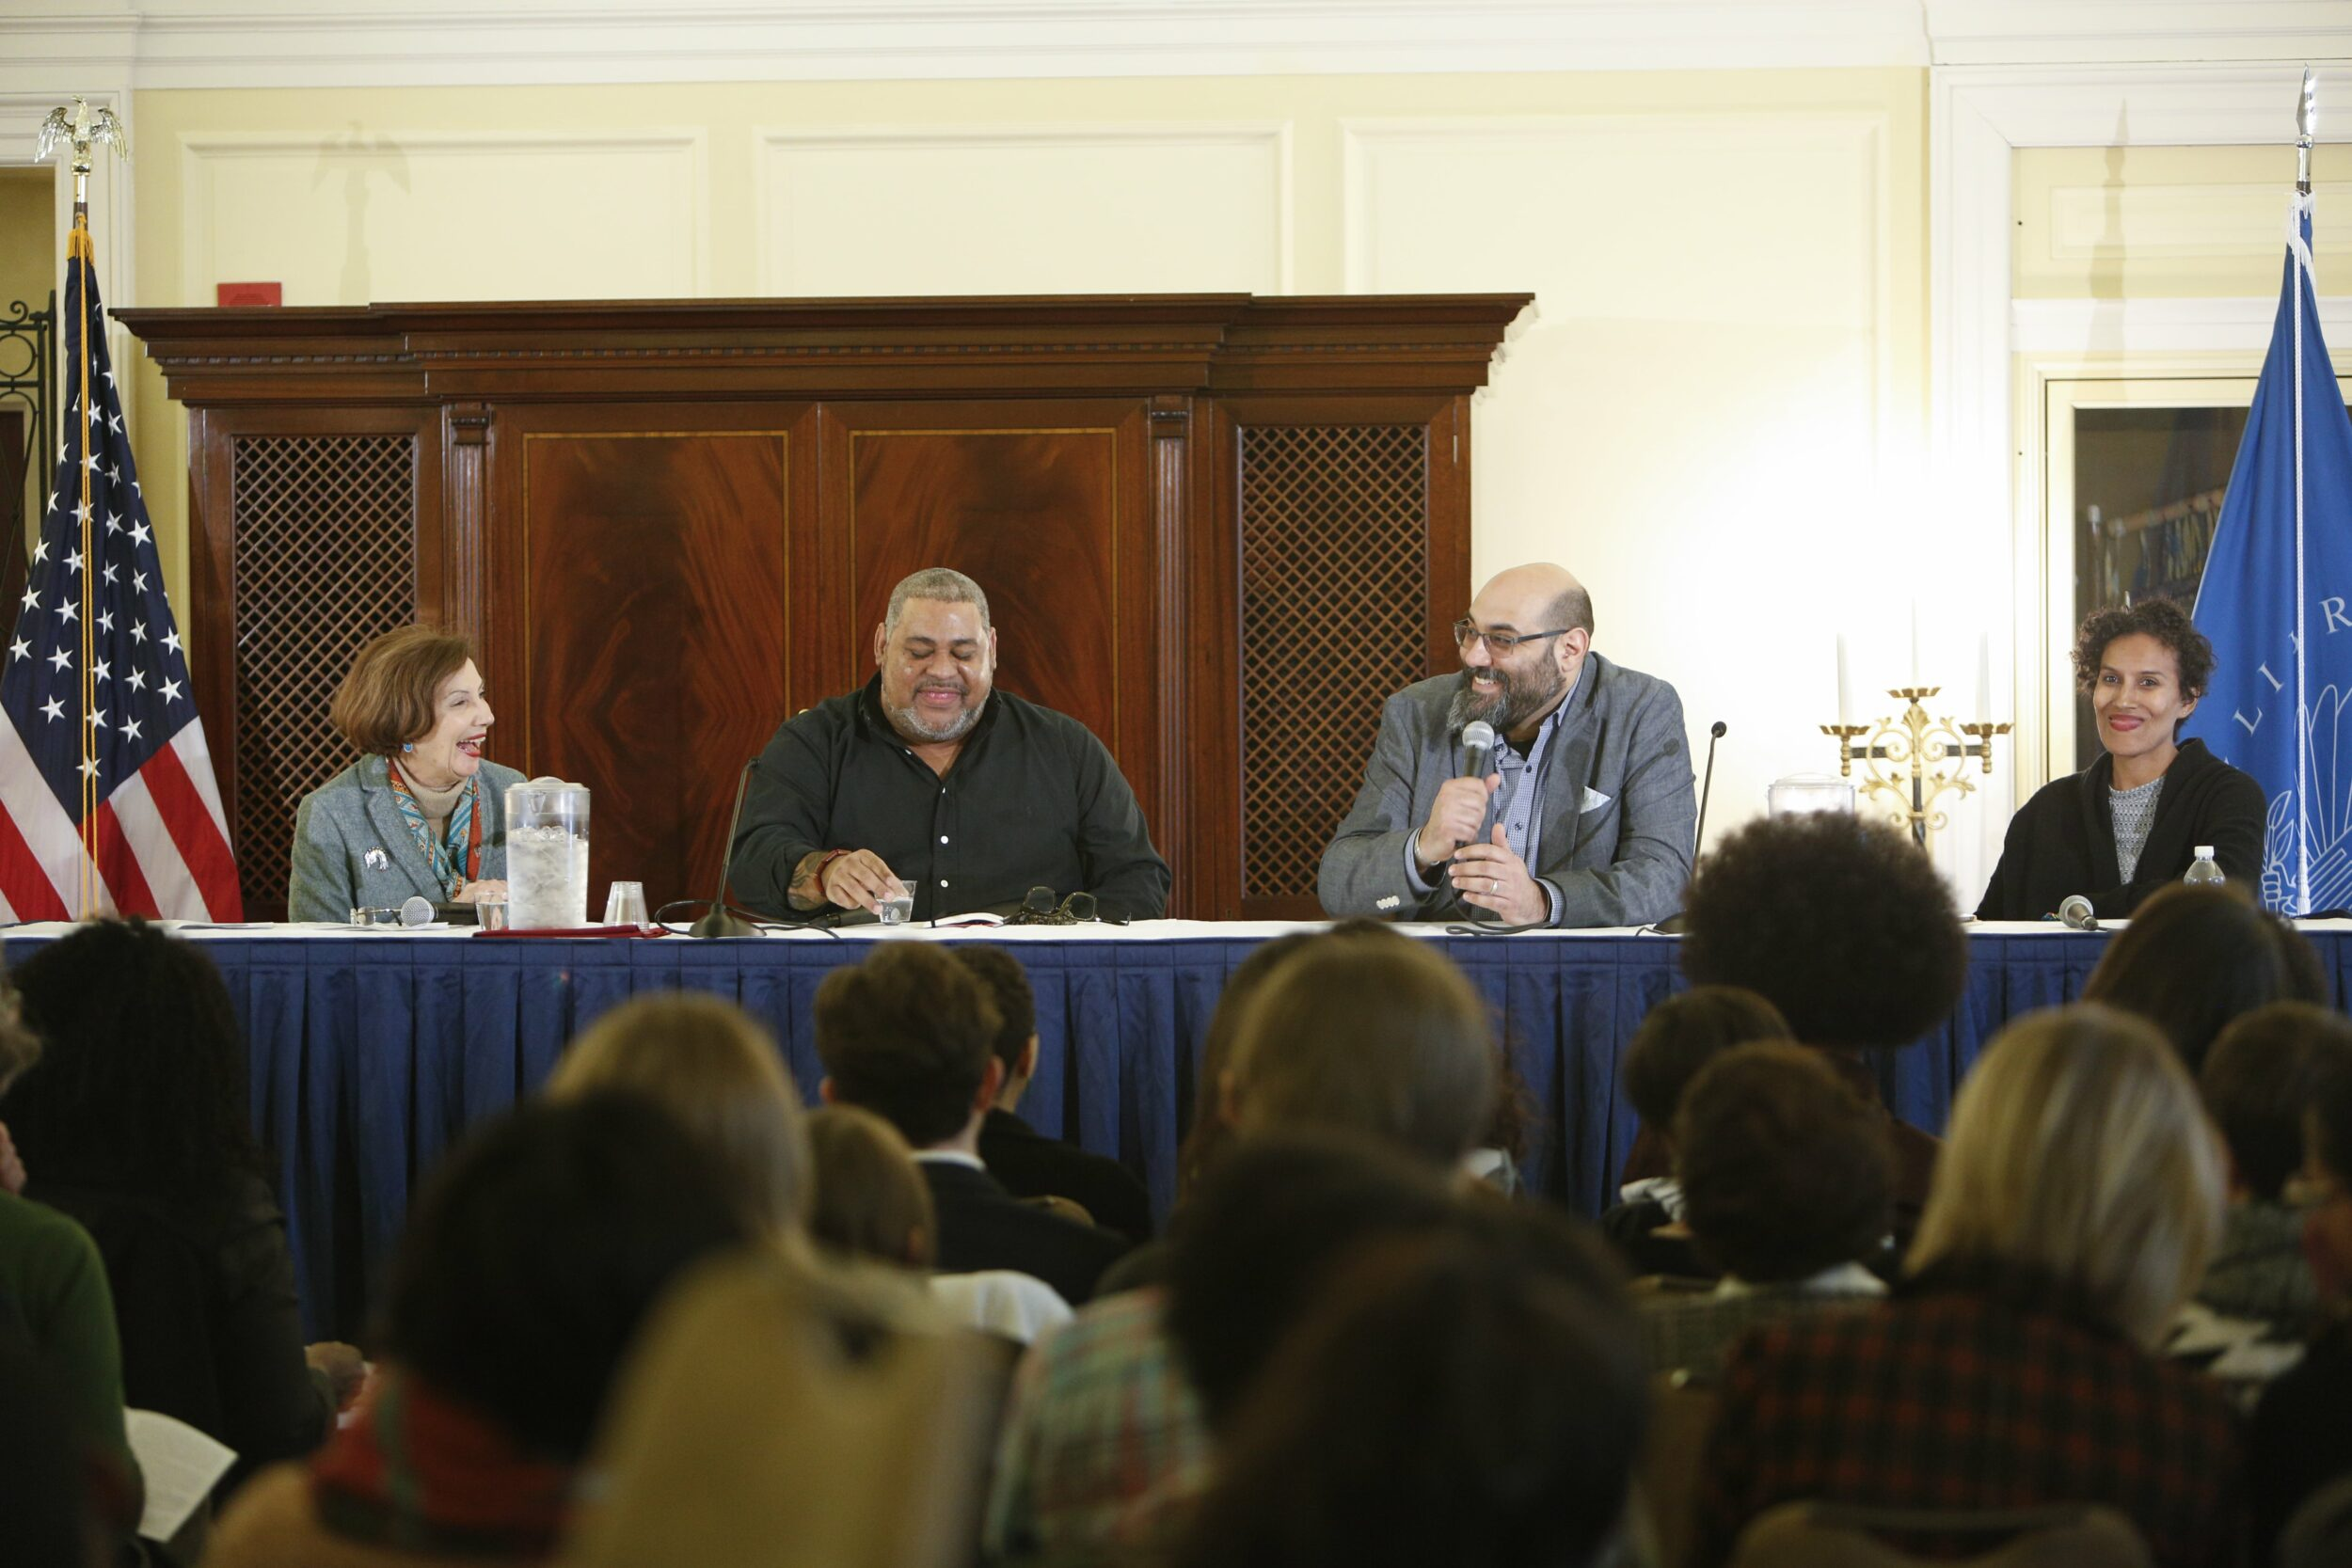 Library of Congress Symposium panel